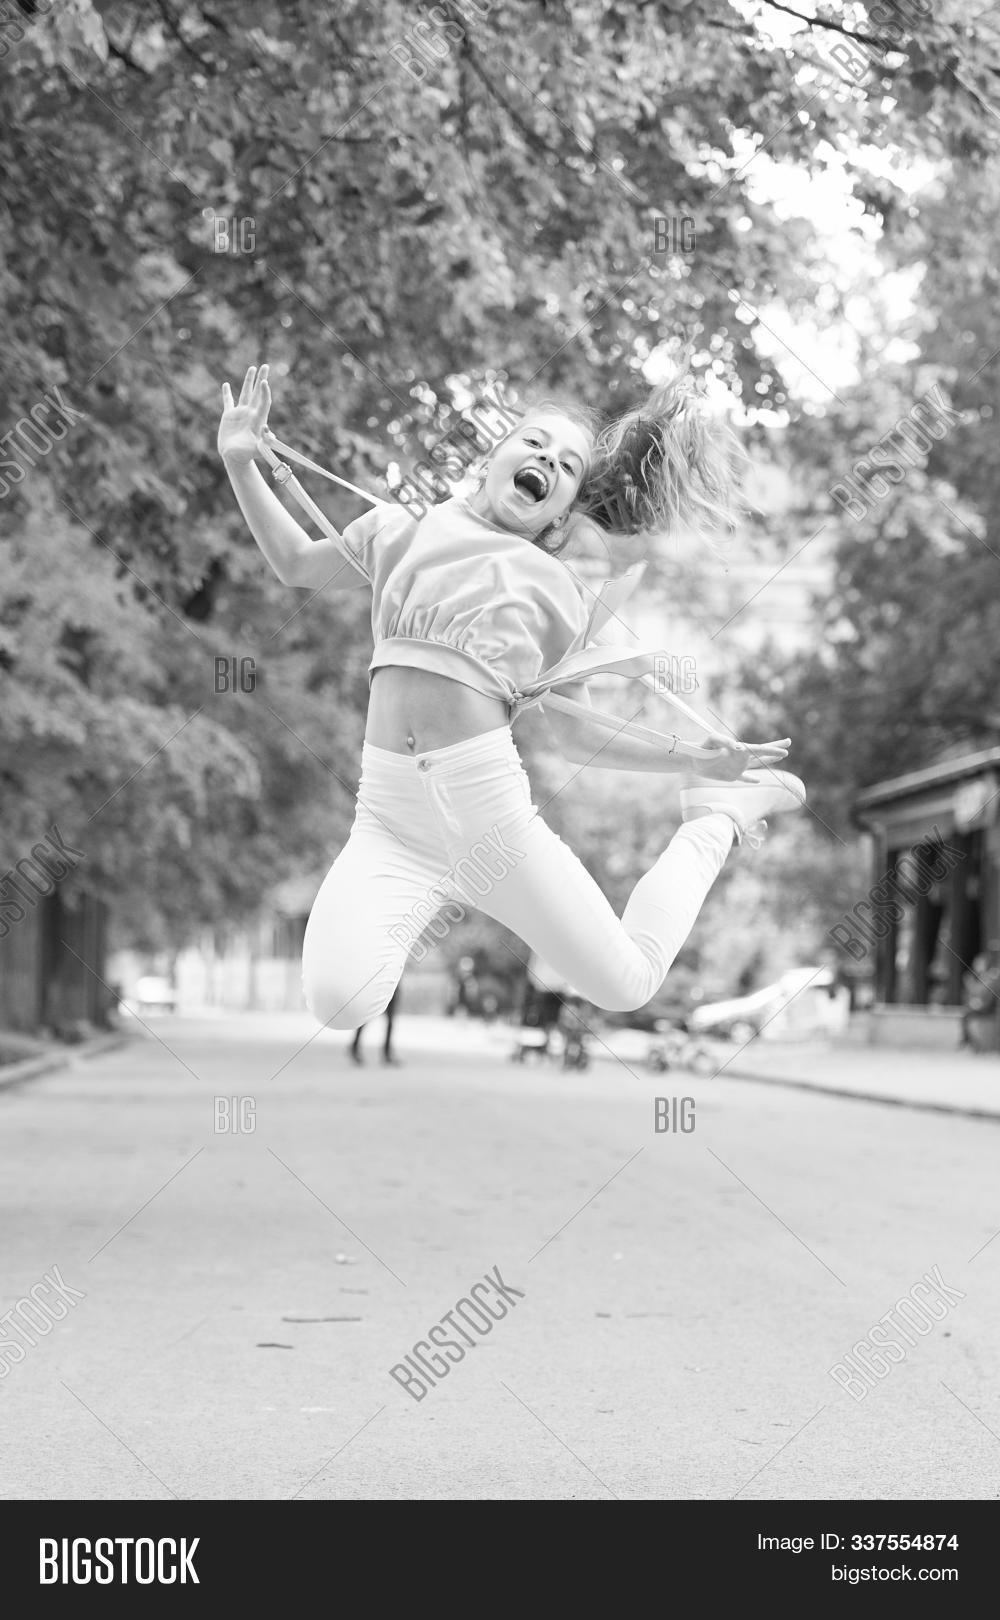 action,active,activity,adorable,baby,beautiful,carefree,caucasian,child,childhood,cute,dance,dancing,emotions,energetic,energy,enjoyment,fashion,fashionable,fit,fitness,free,freedom,fun,girl,happiness,happy,health,healthy,high,joy,joyful,jump,jumping,kid,lifestyle,motion,movement,play,playful,preteen,relaxation,smile,smiling,sport,summer